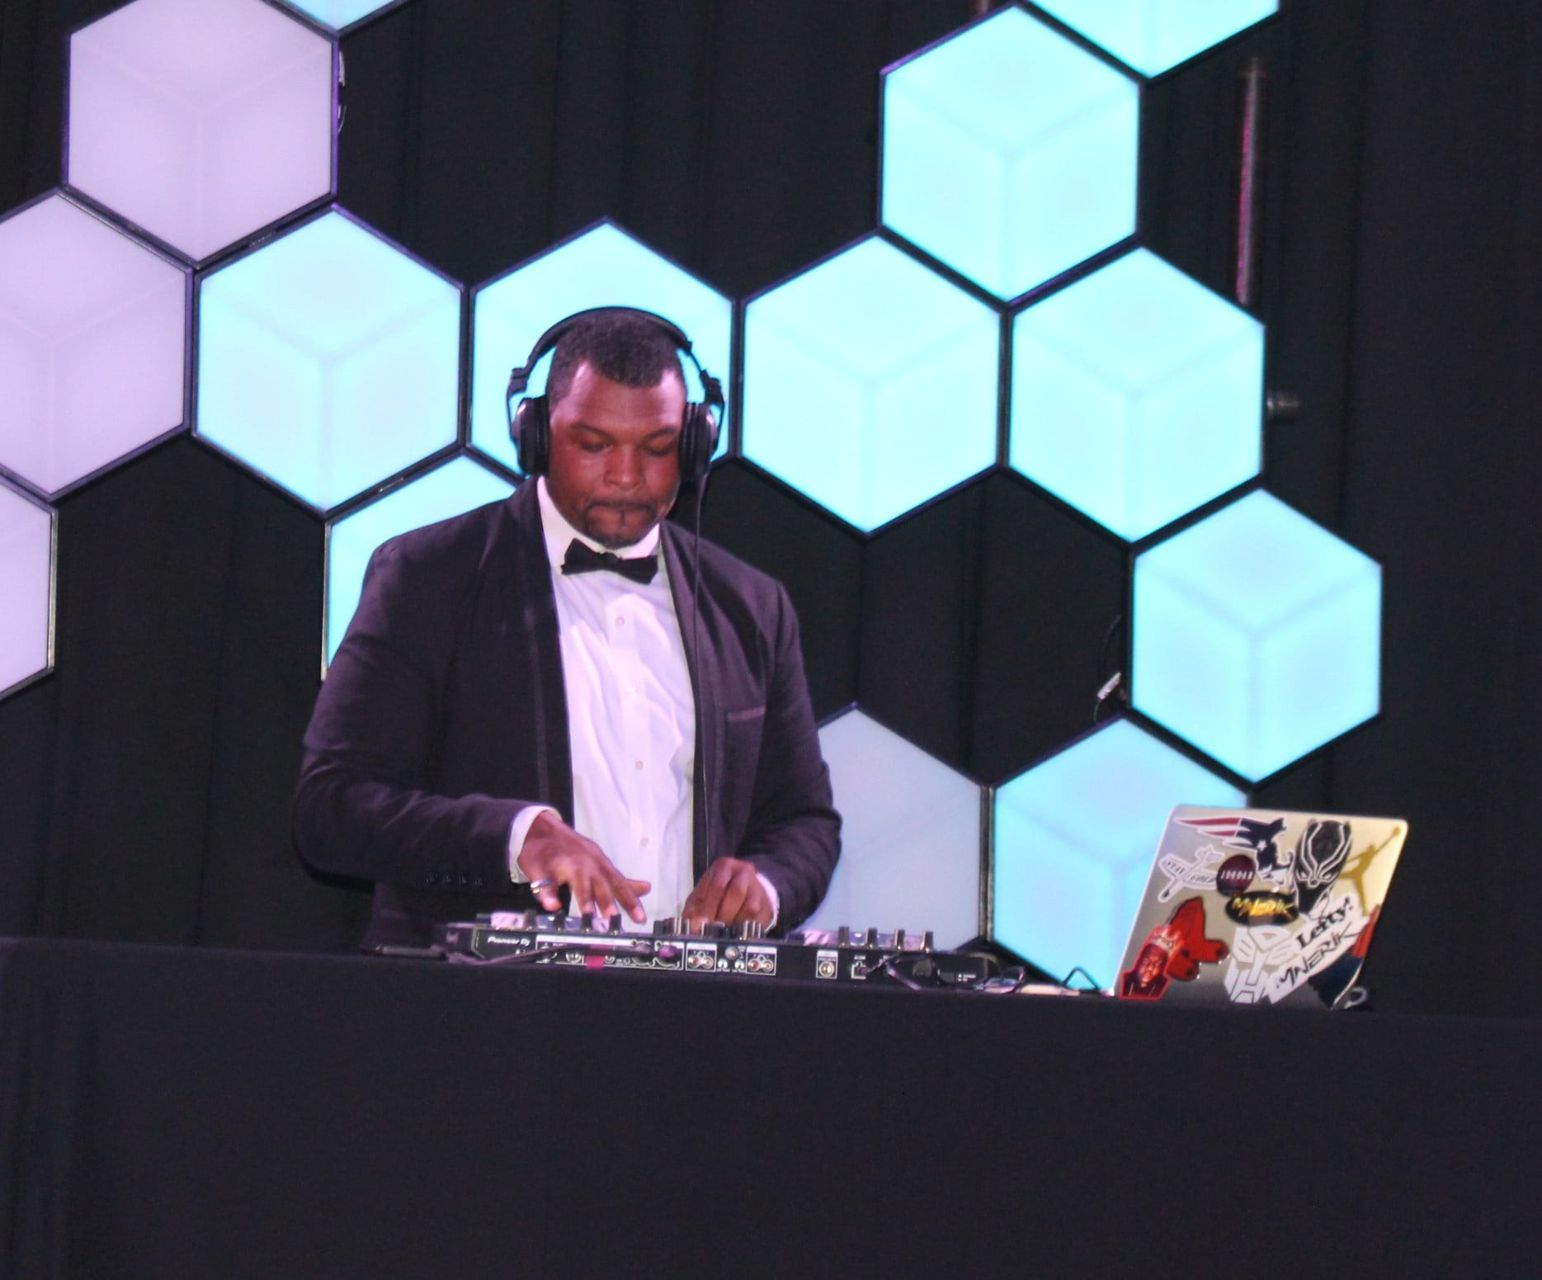 DJ in a tux at a fundraising event